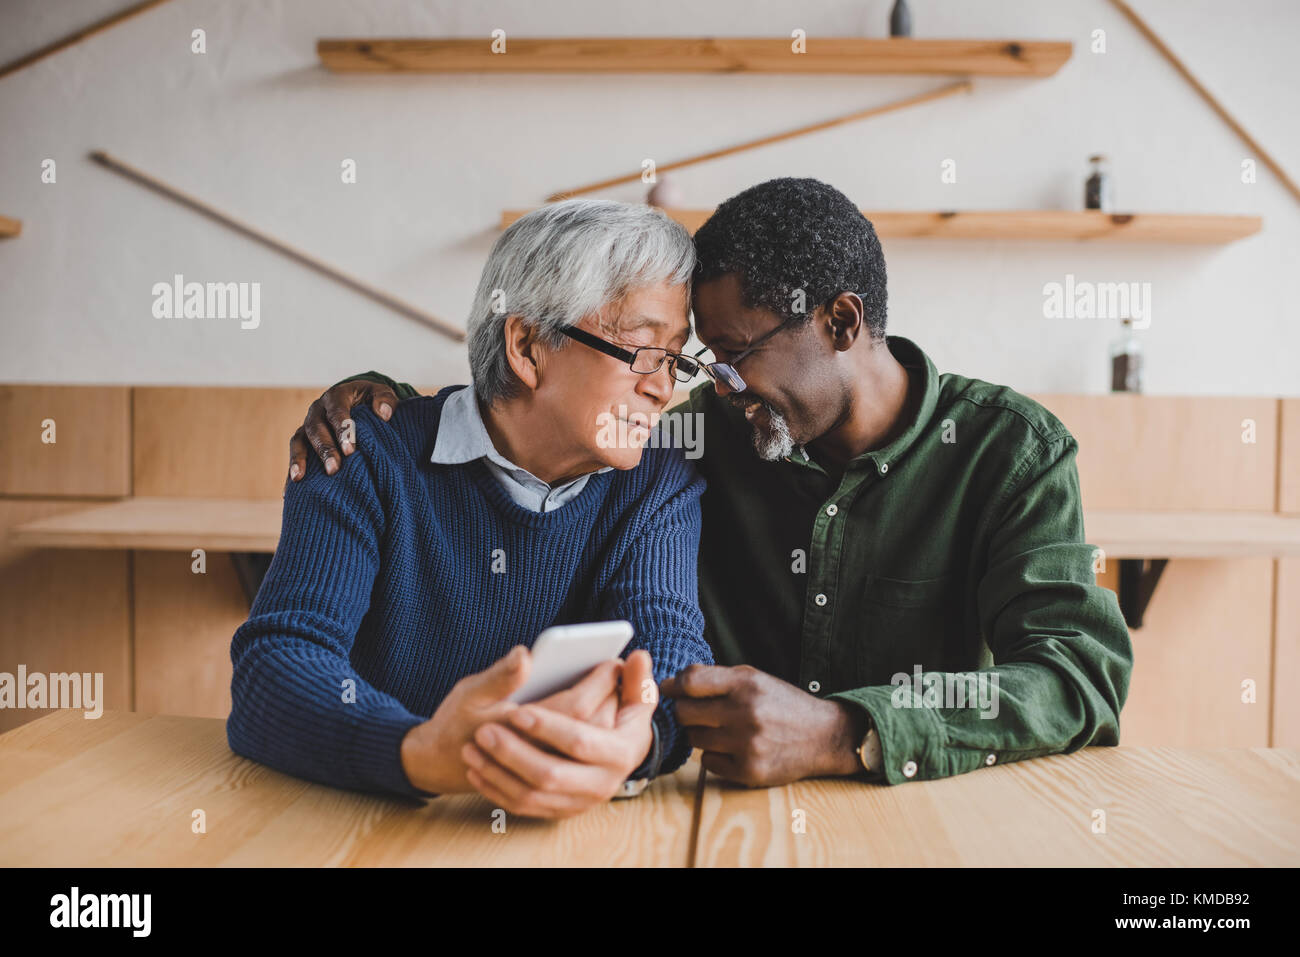 senior men embracing - Stock Image